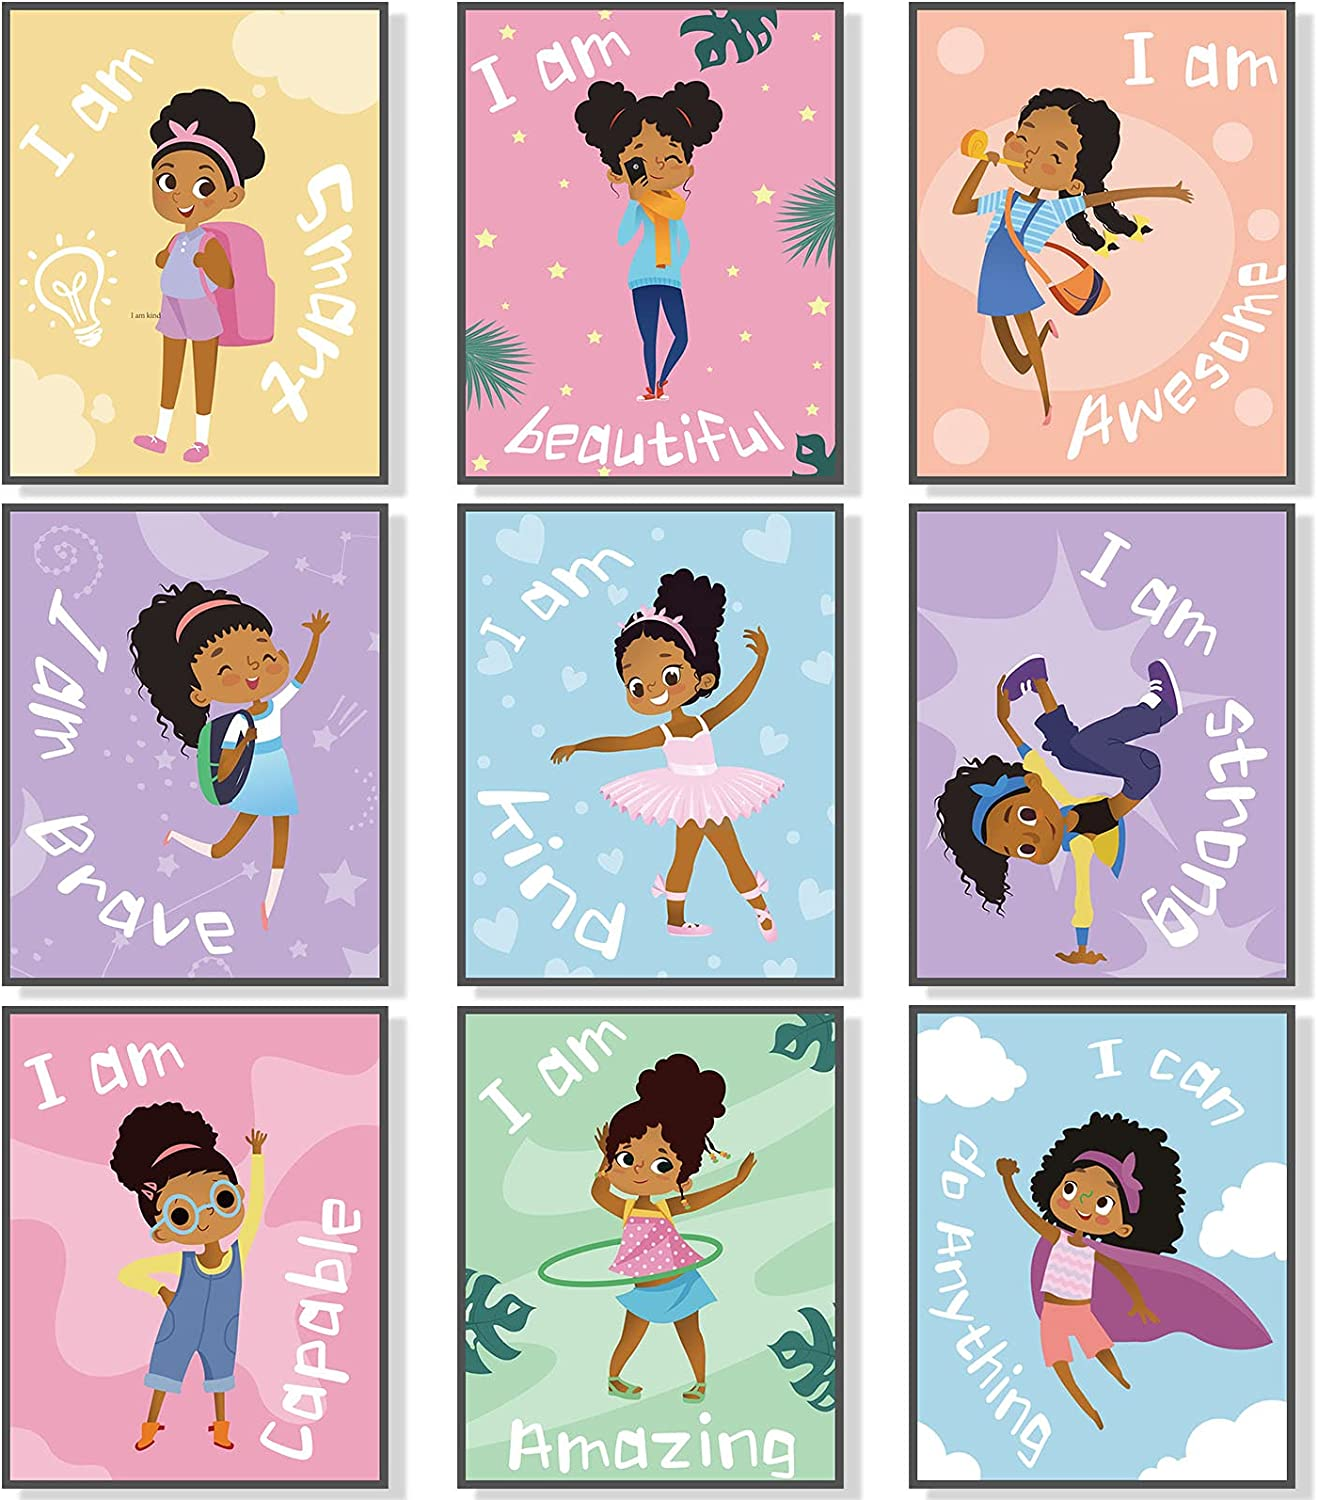 Outus 9 Pieces Girls Room Decor Black Girl Wall Painting Art Decor Motivational Black Girl Posters Girls Bedroom Motivational Art Paint for Kids Teen Girls Room Wall Decorations,Unframed, 8 x 10 Inch